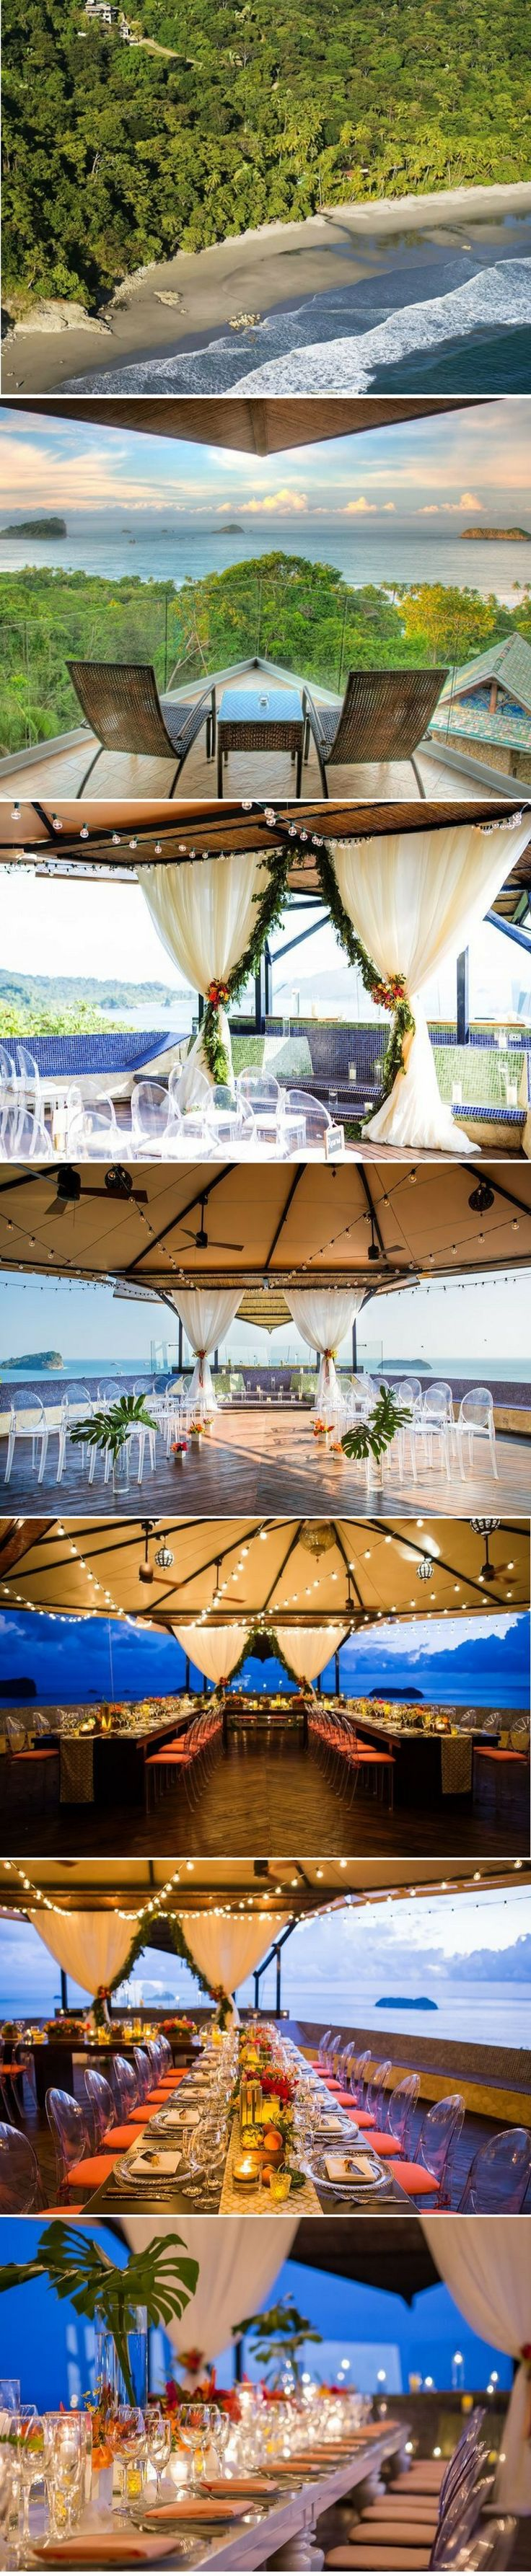 This private villa is one of the most stunning Costa Rica wedding locations!   LOVE this beautiful destination wedding venue!